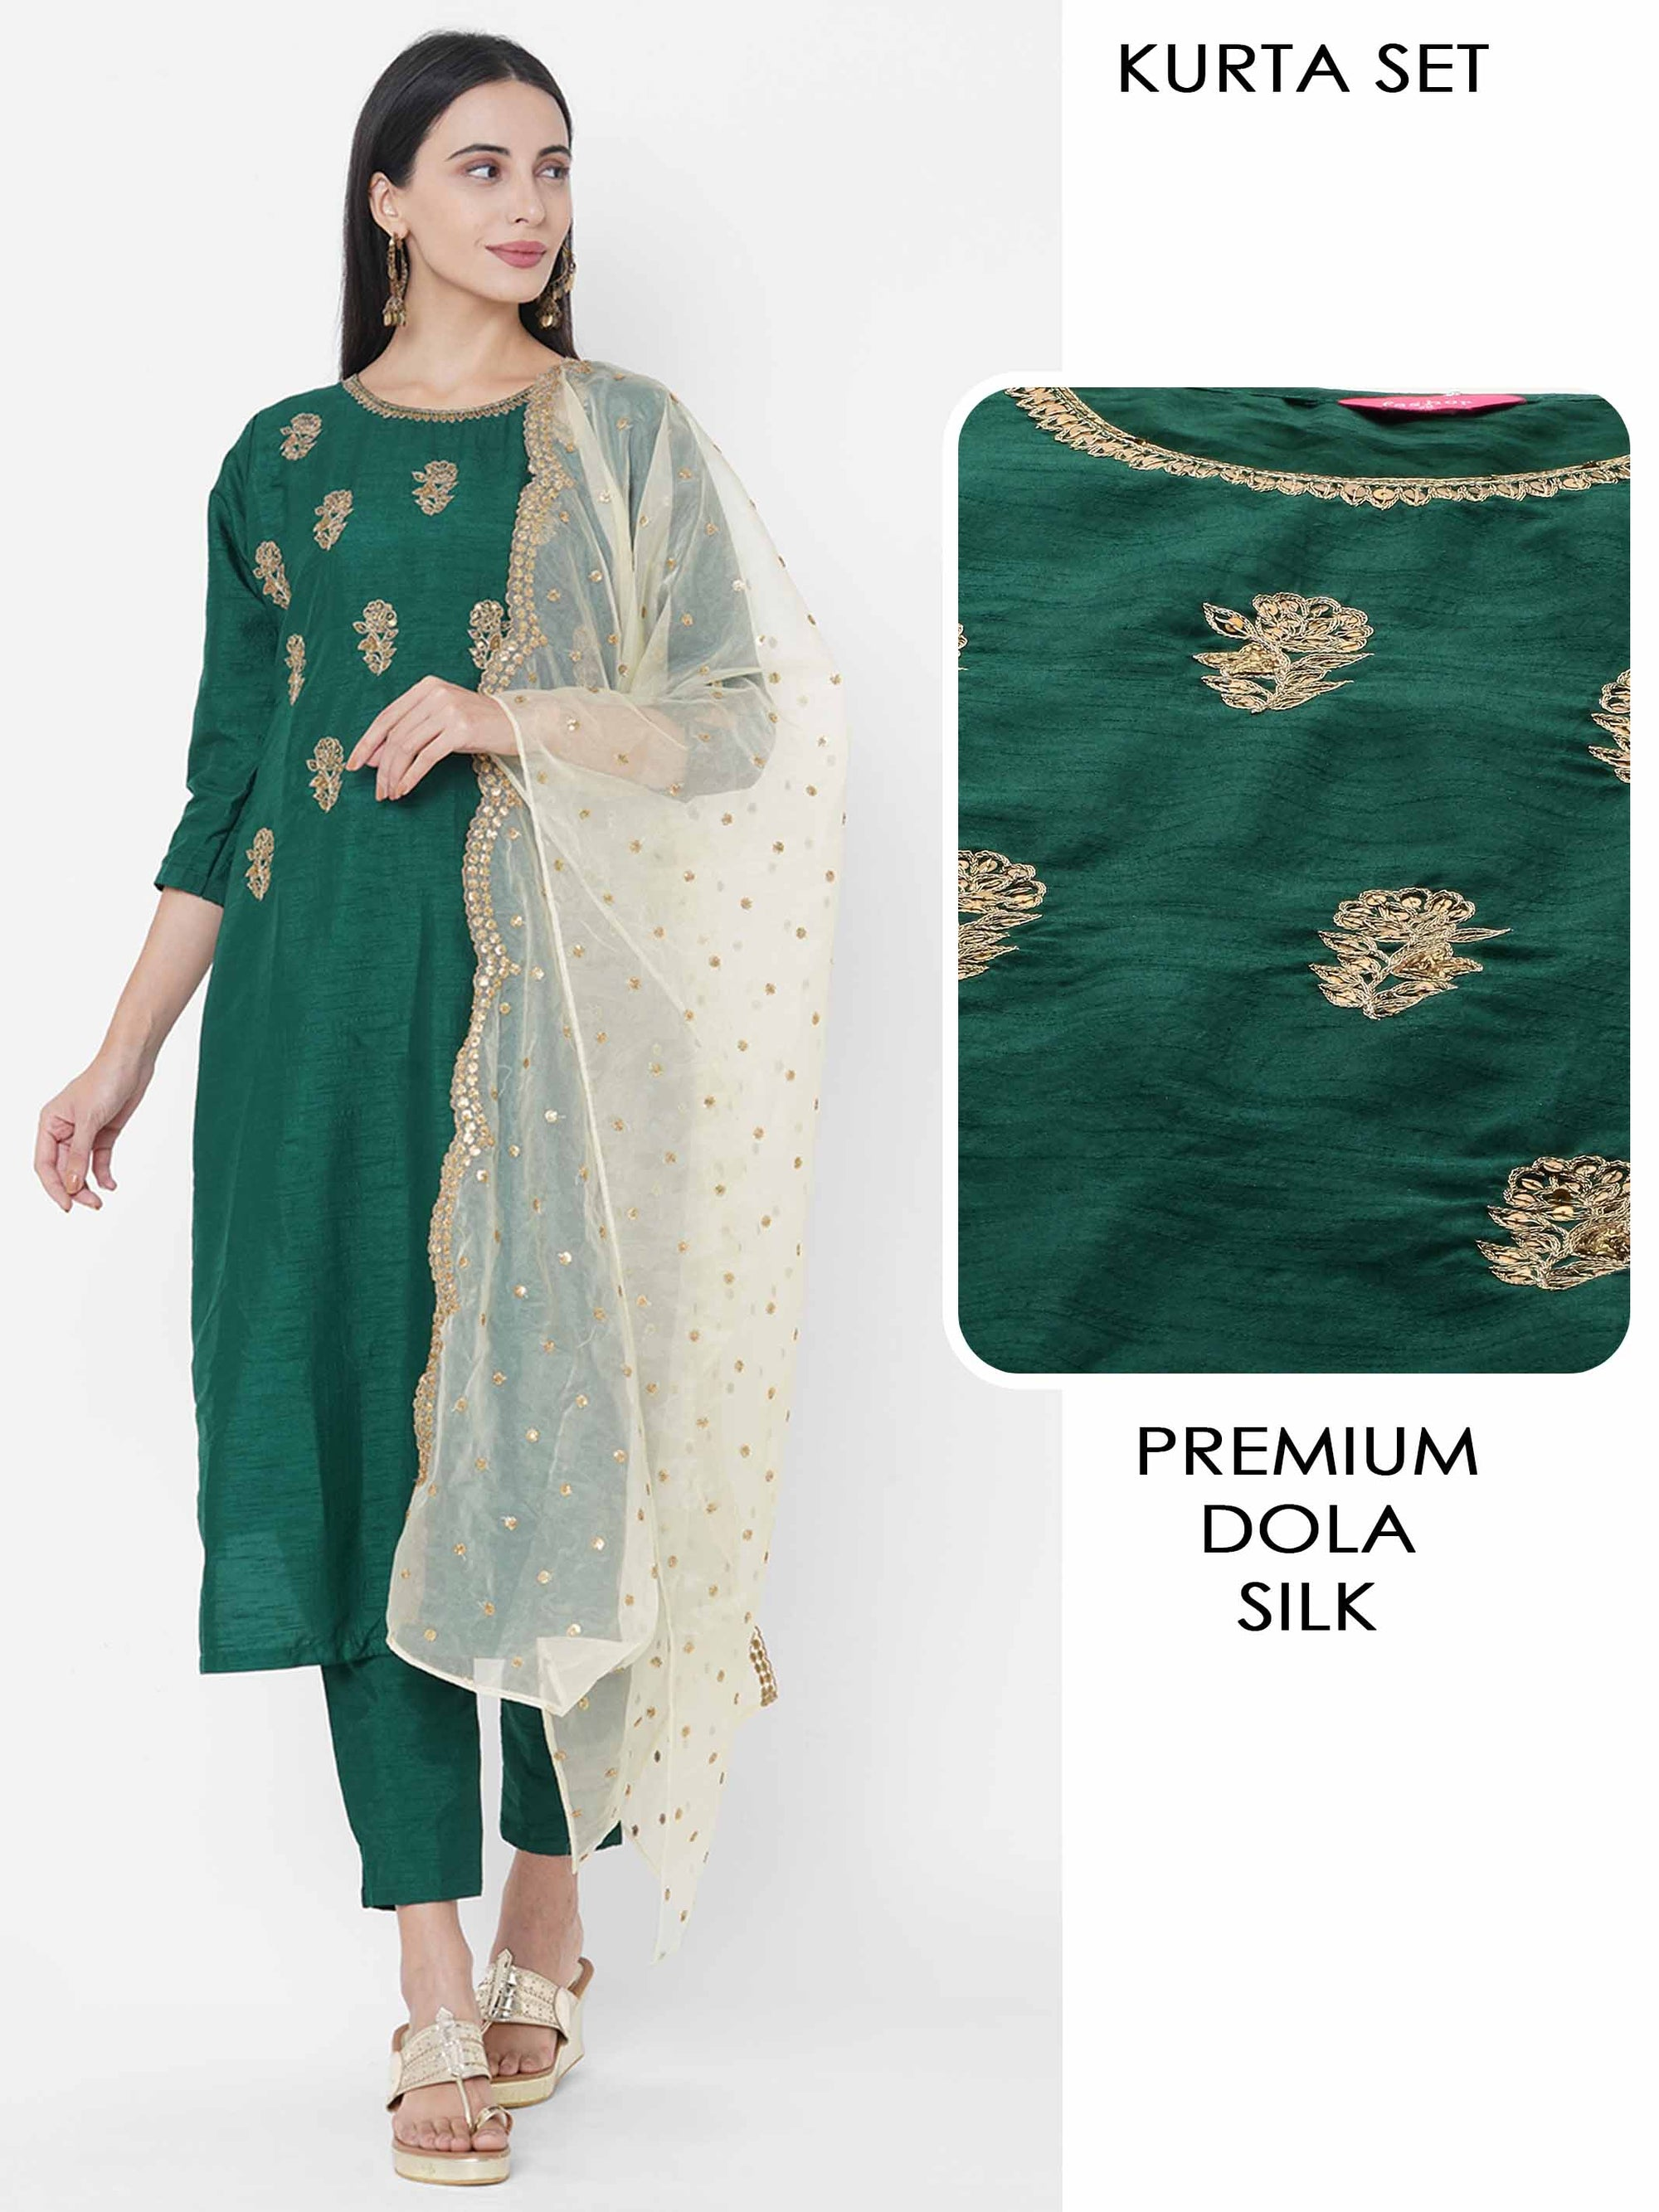 Floral Hand Embroidered Kurta with Solid Ankle Pant & Embroidered Scallop Dupatta - Bottle Green